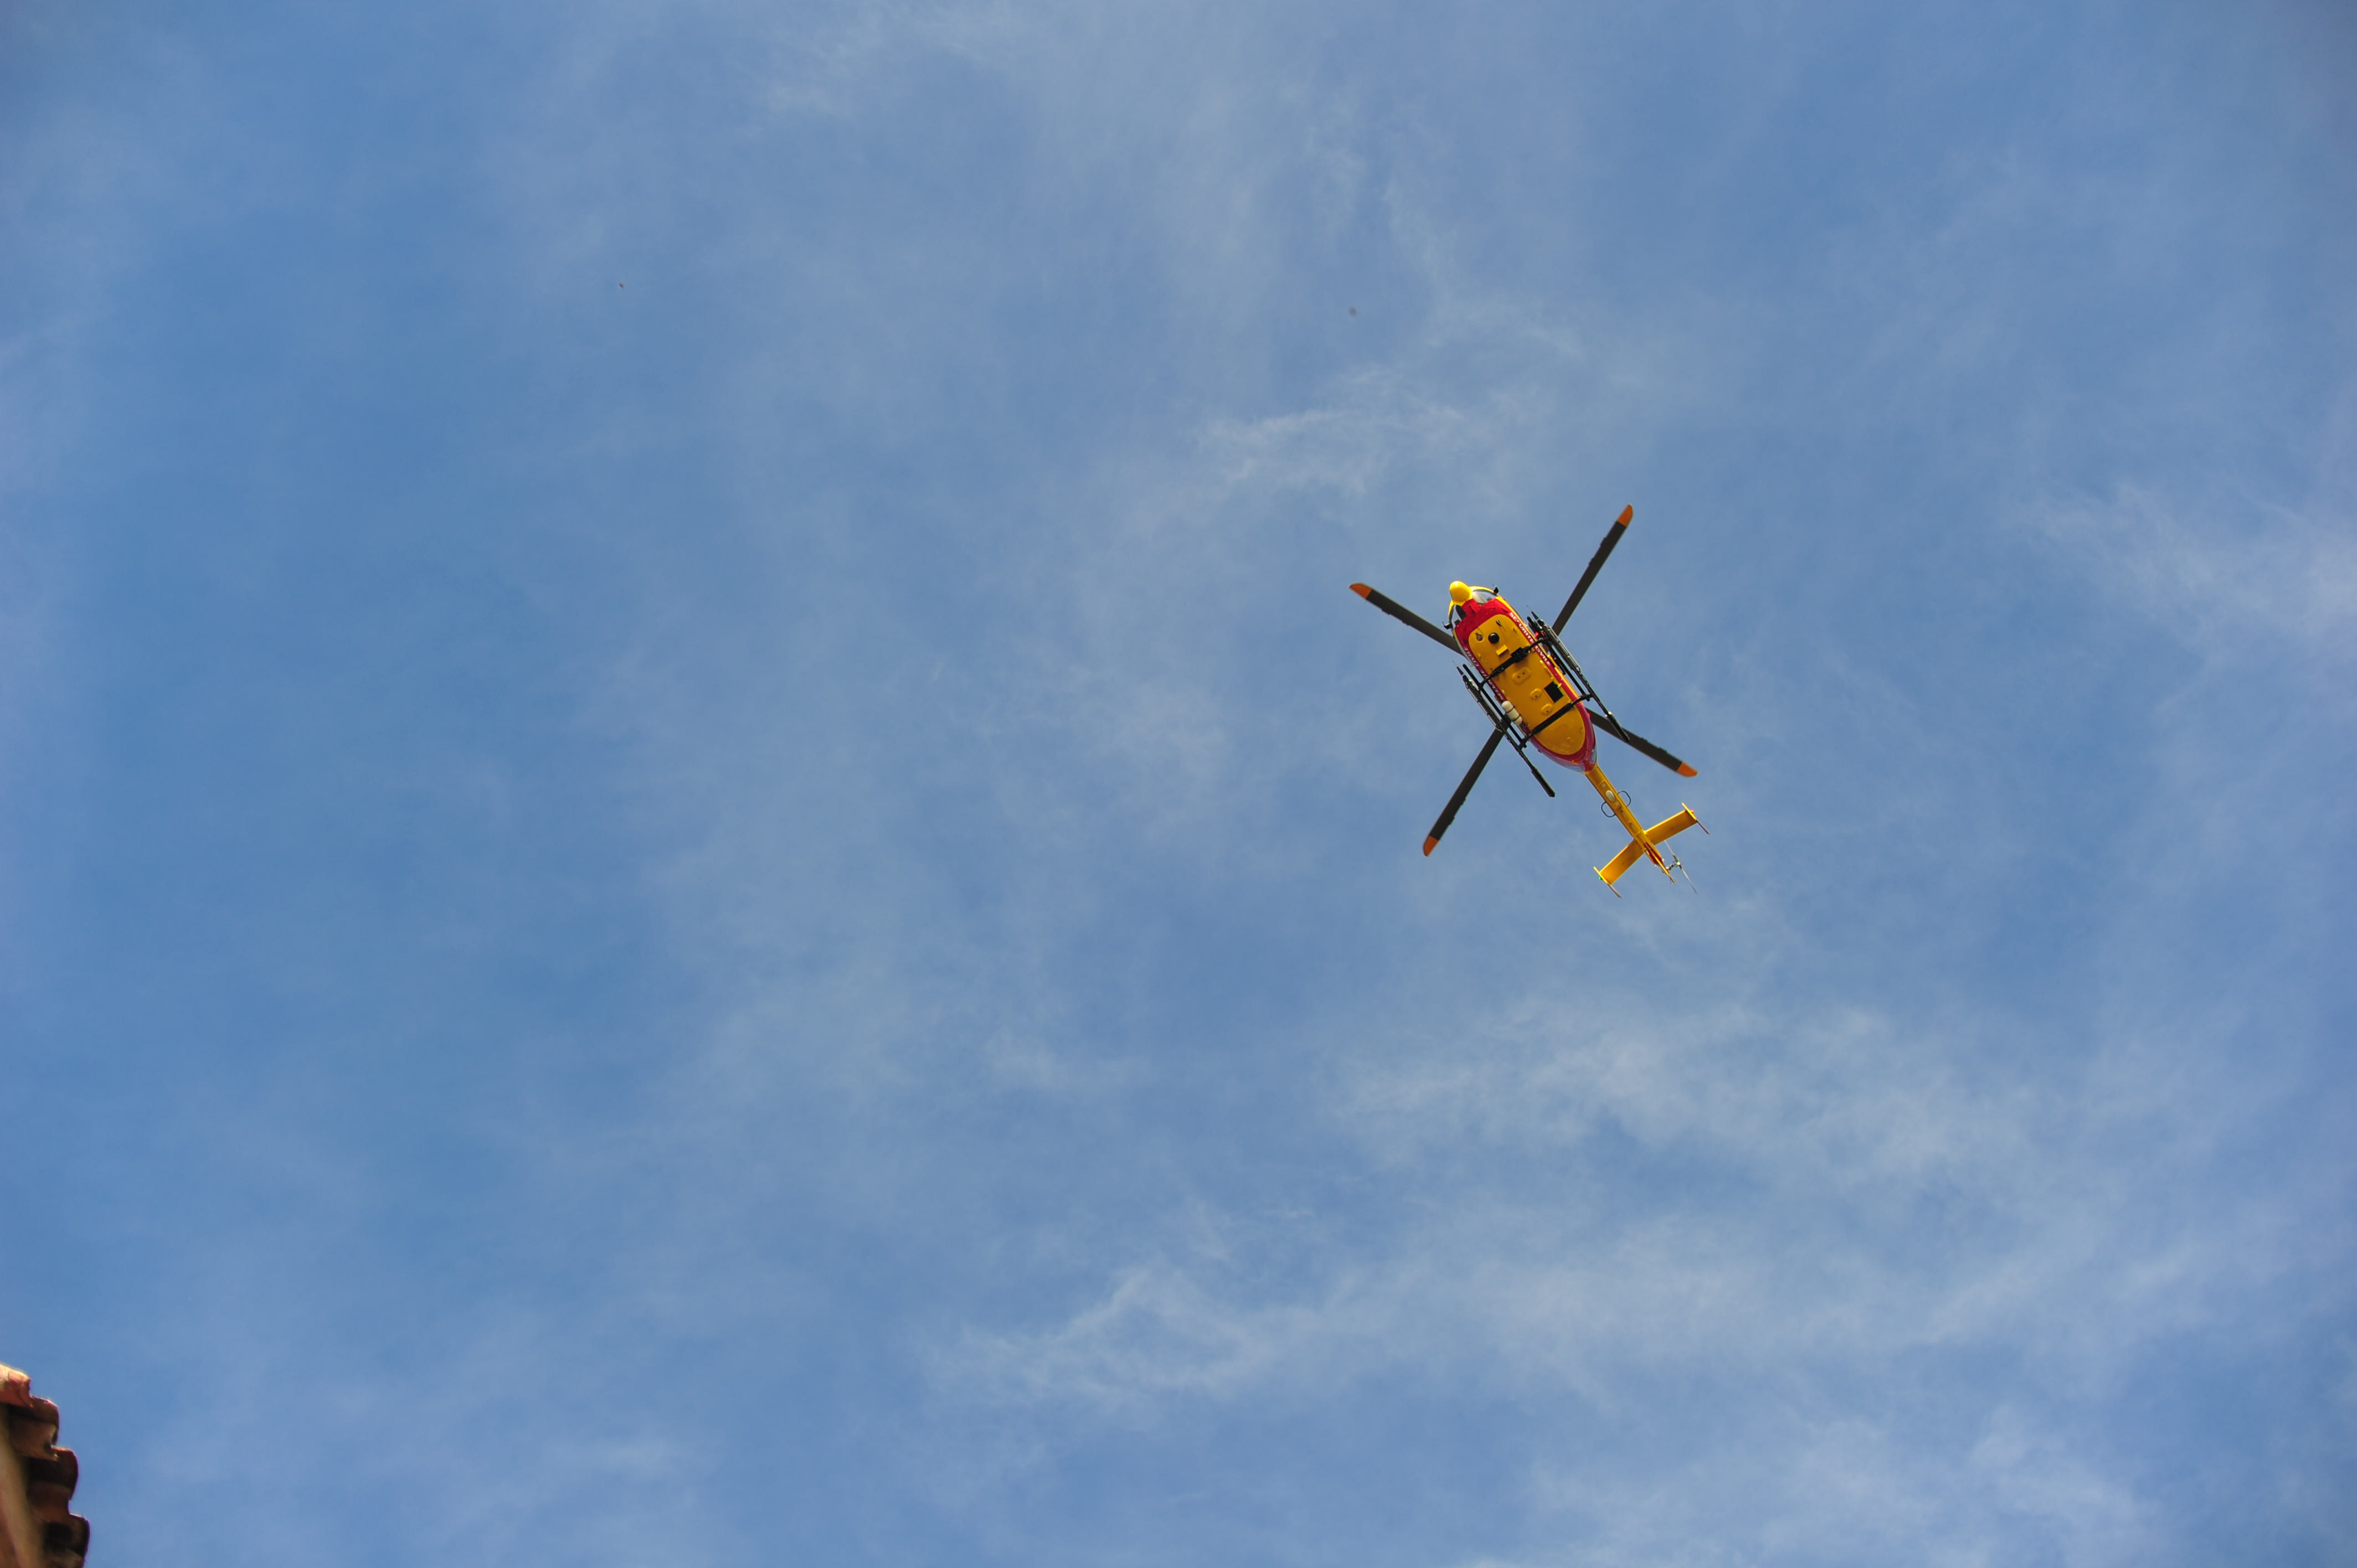 Helicopter overhead